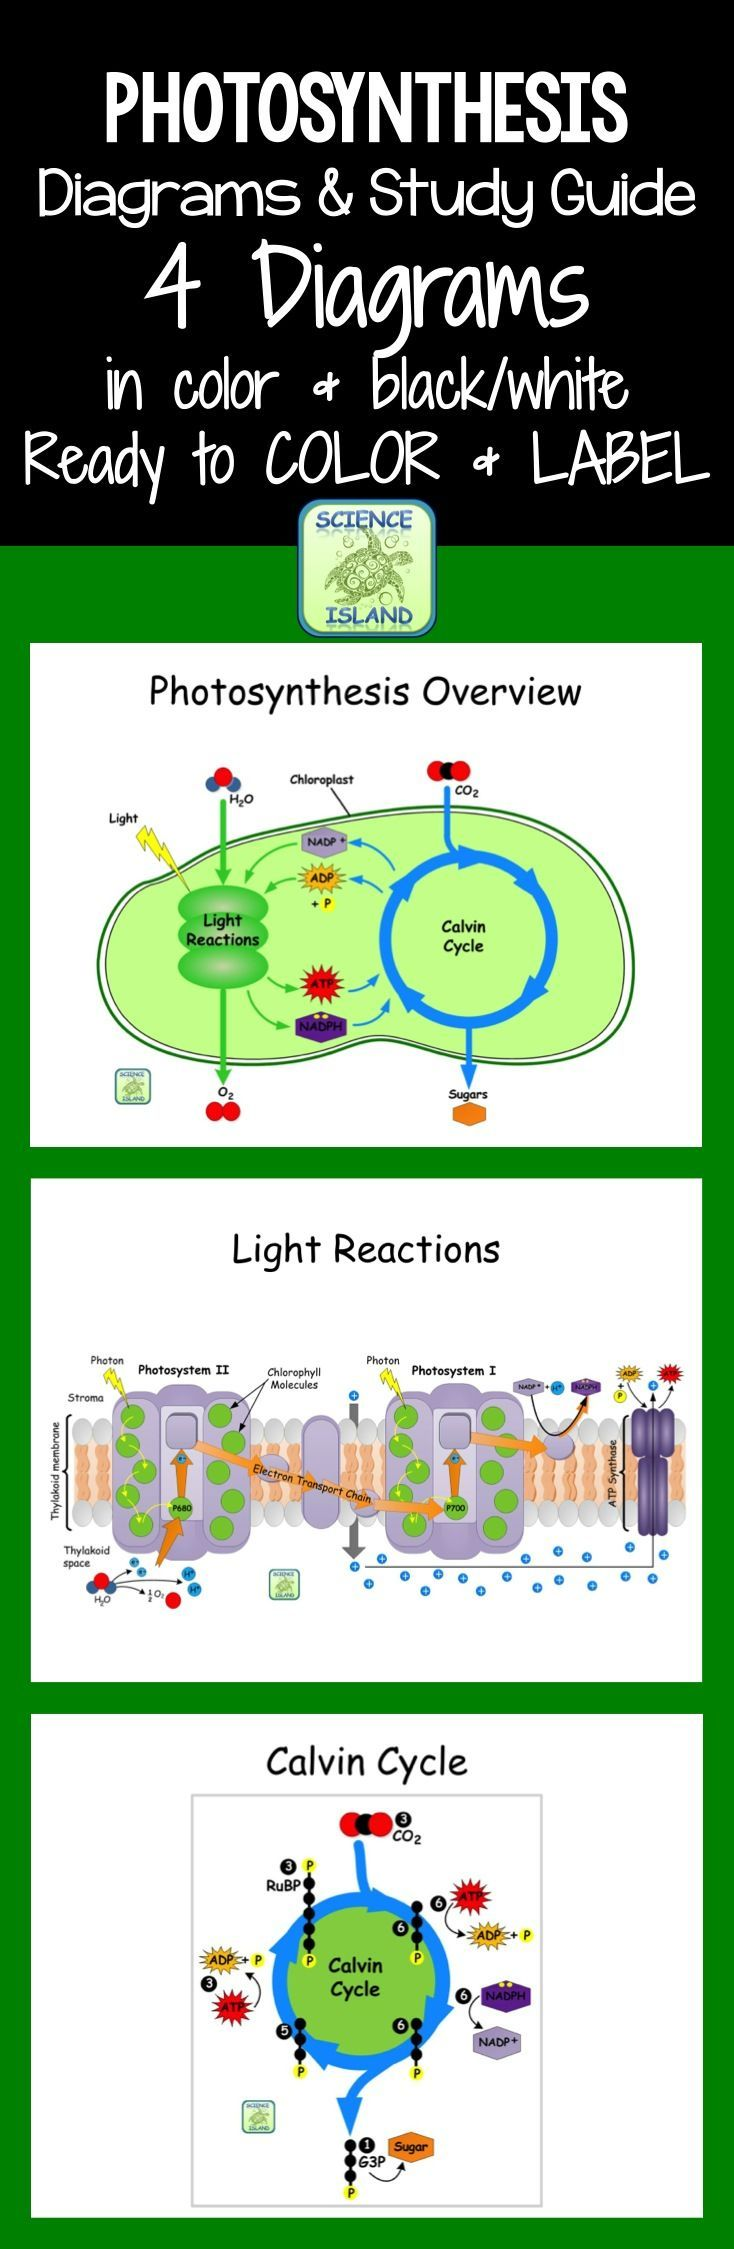 Photosynthesis diagrams and study guide photosynthesis diagram great photosynthesis diagrams for biology are ready to color andor label study guide pooptronica Image collections